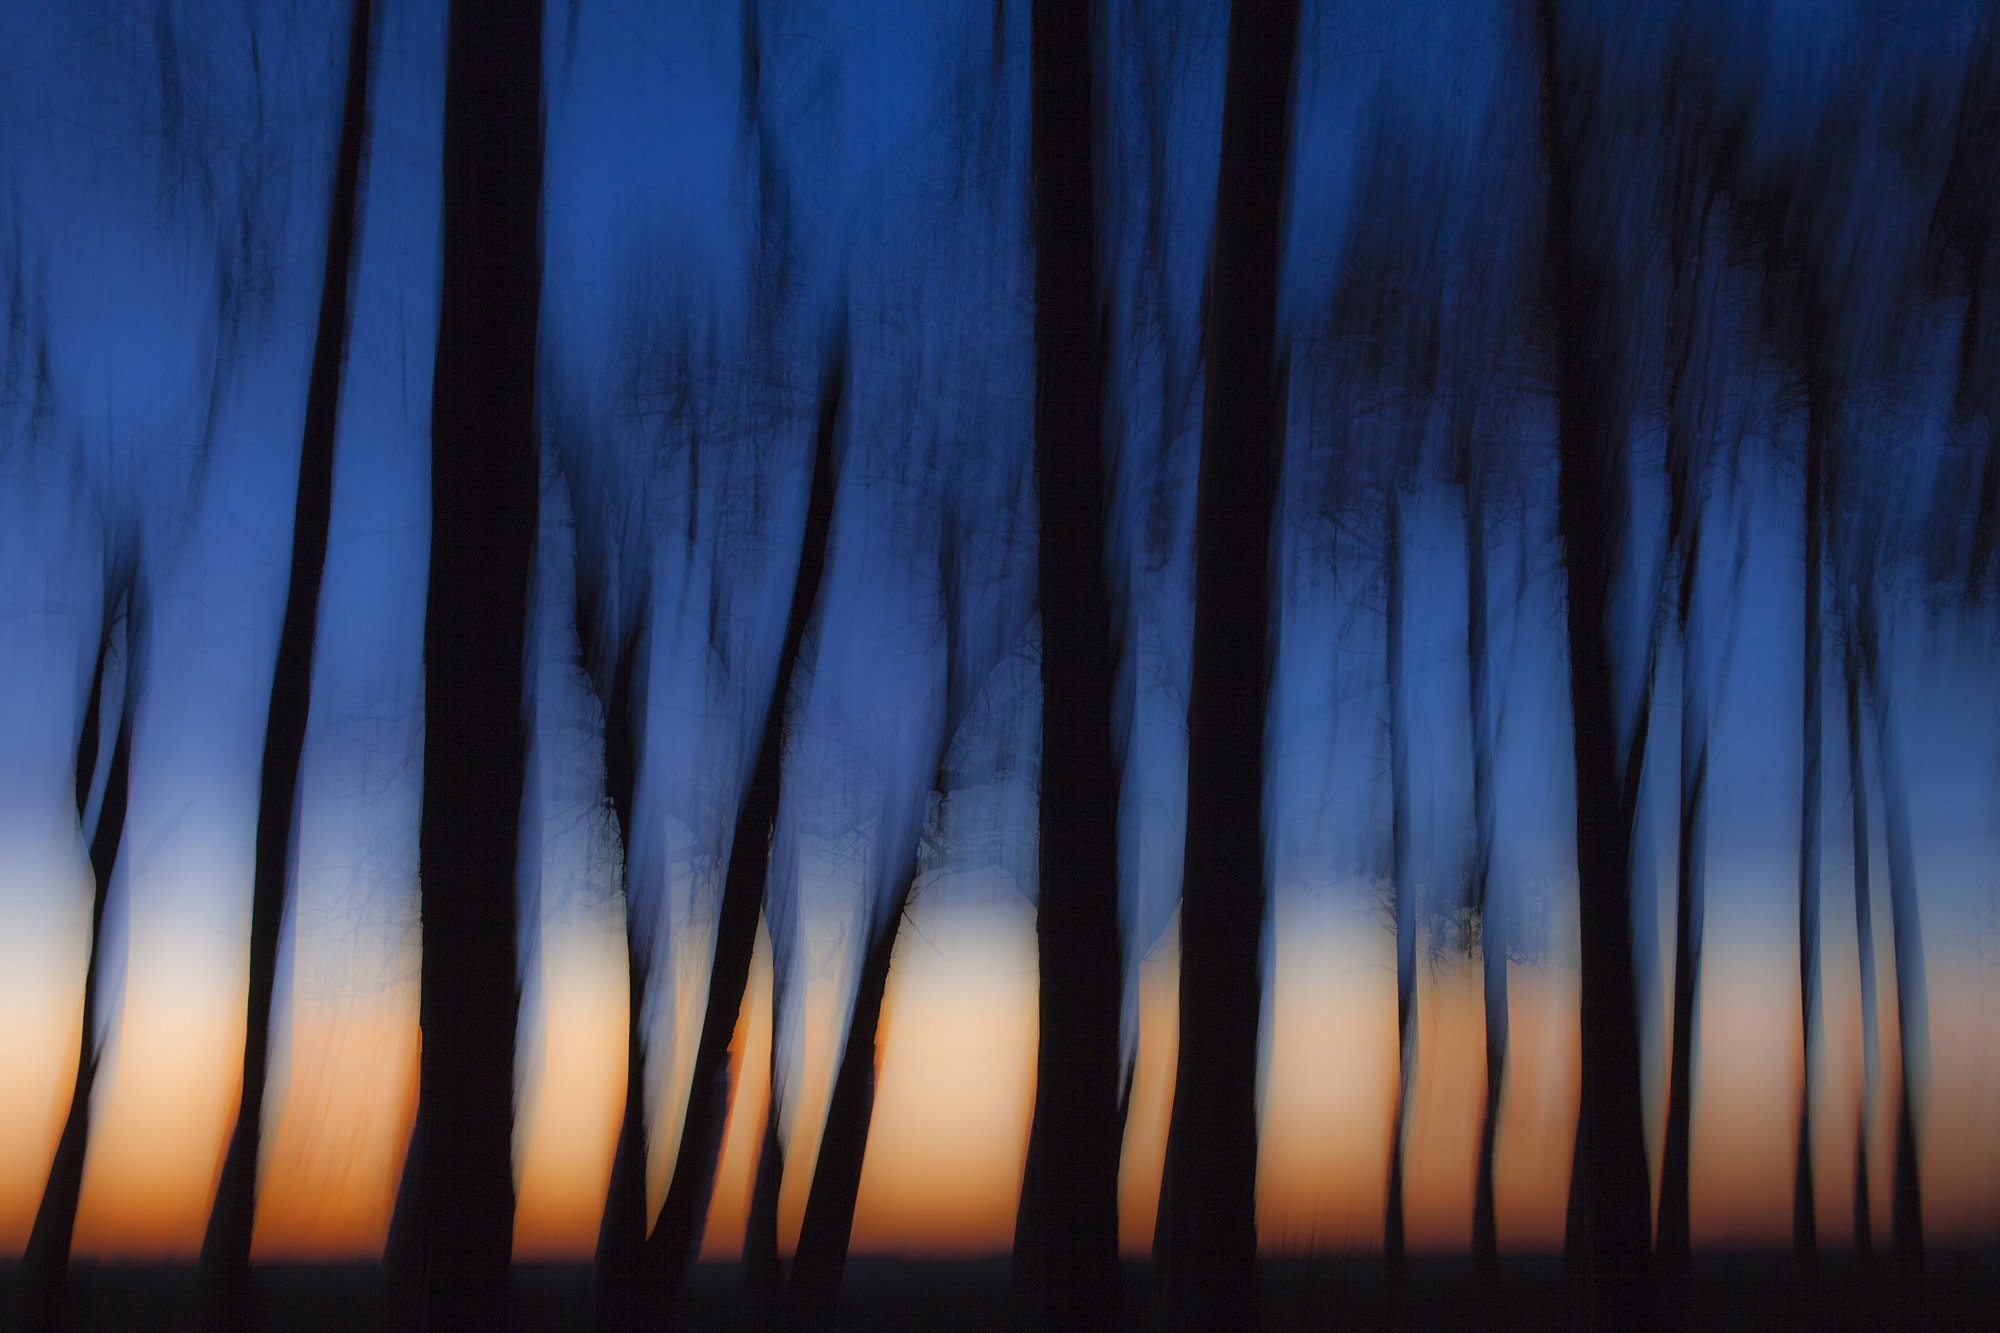 Photograph Trees silhouetted against the morning sky. by Jerry Monkman on 500px